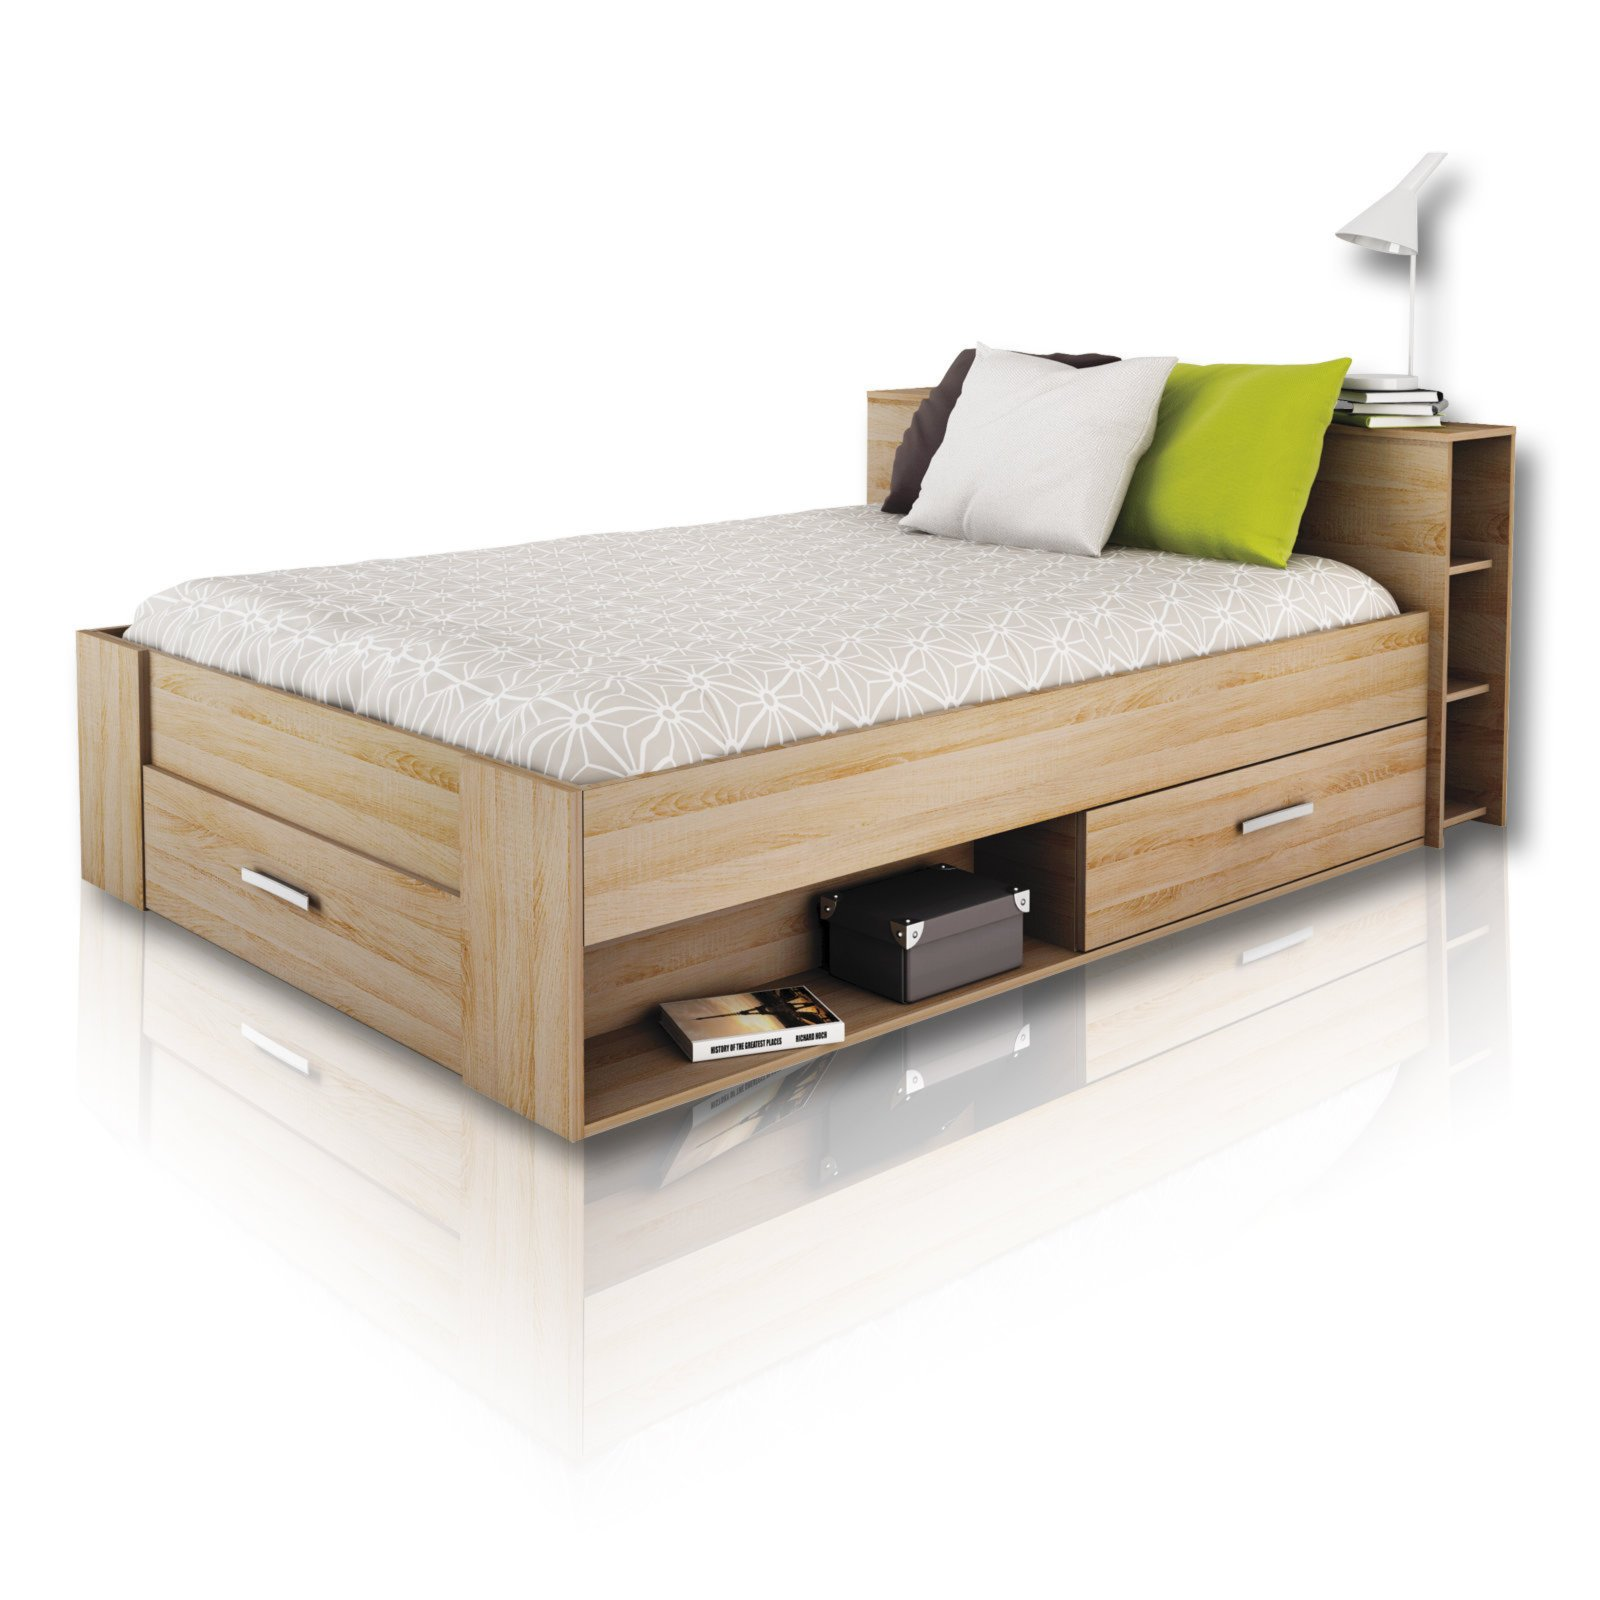 Roller Betten 120x200 Jugendbett-funktionsbett Pocket - Eiche Sonoma - 140x200